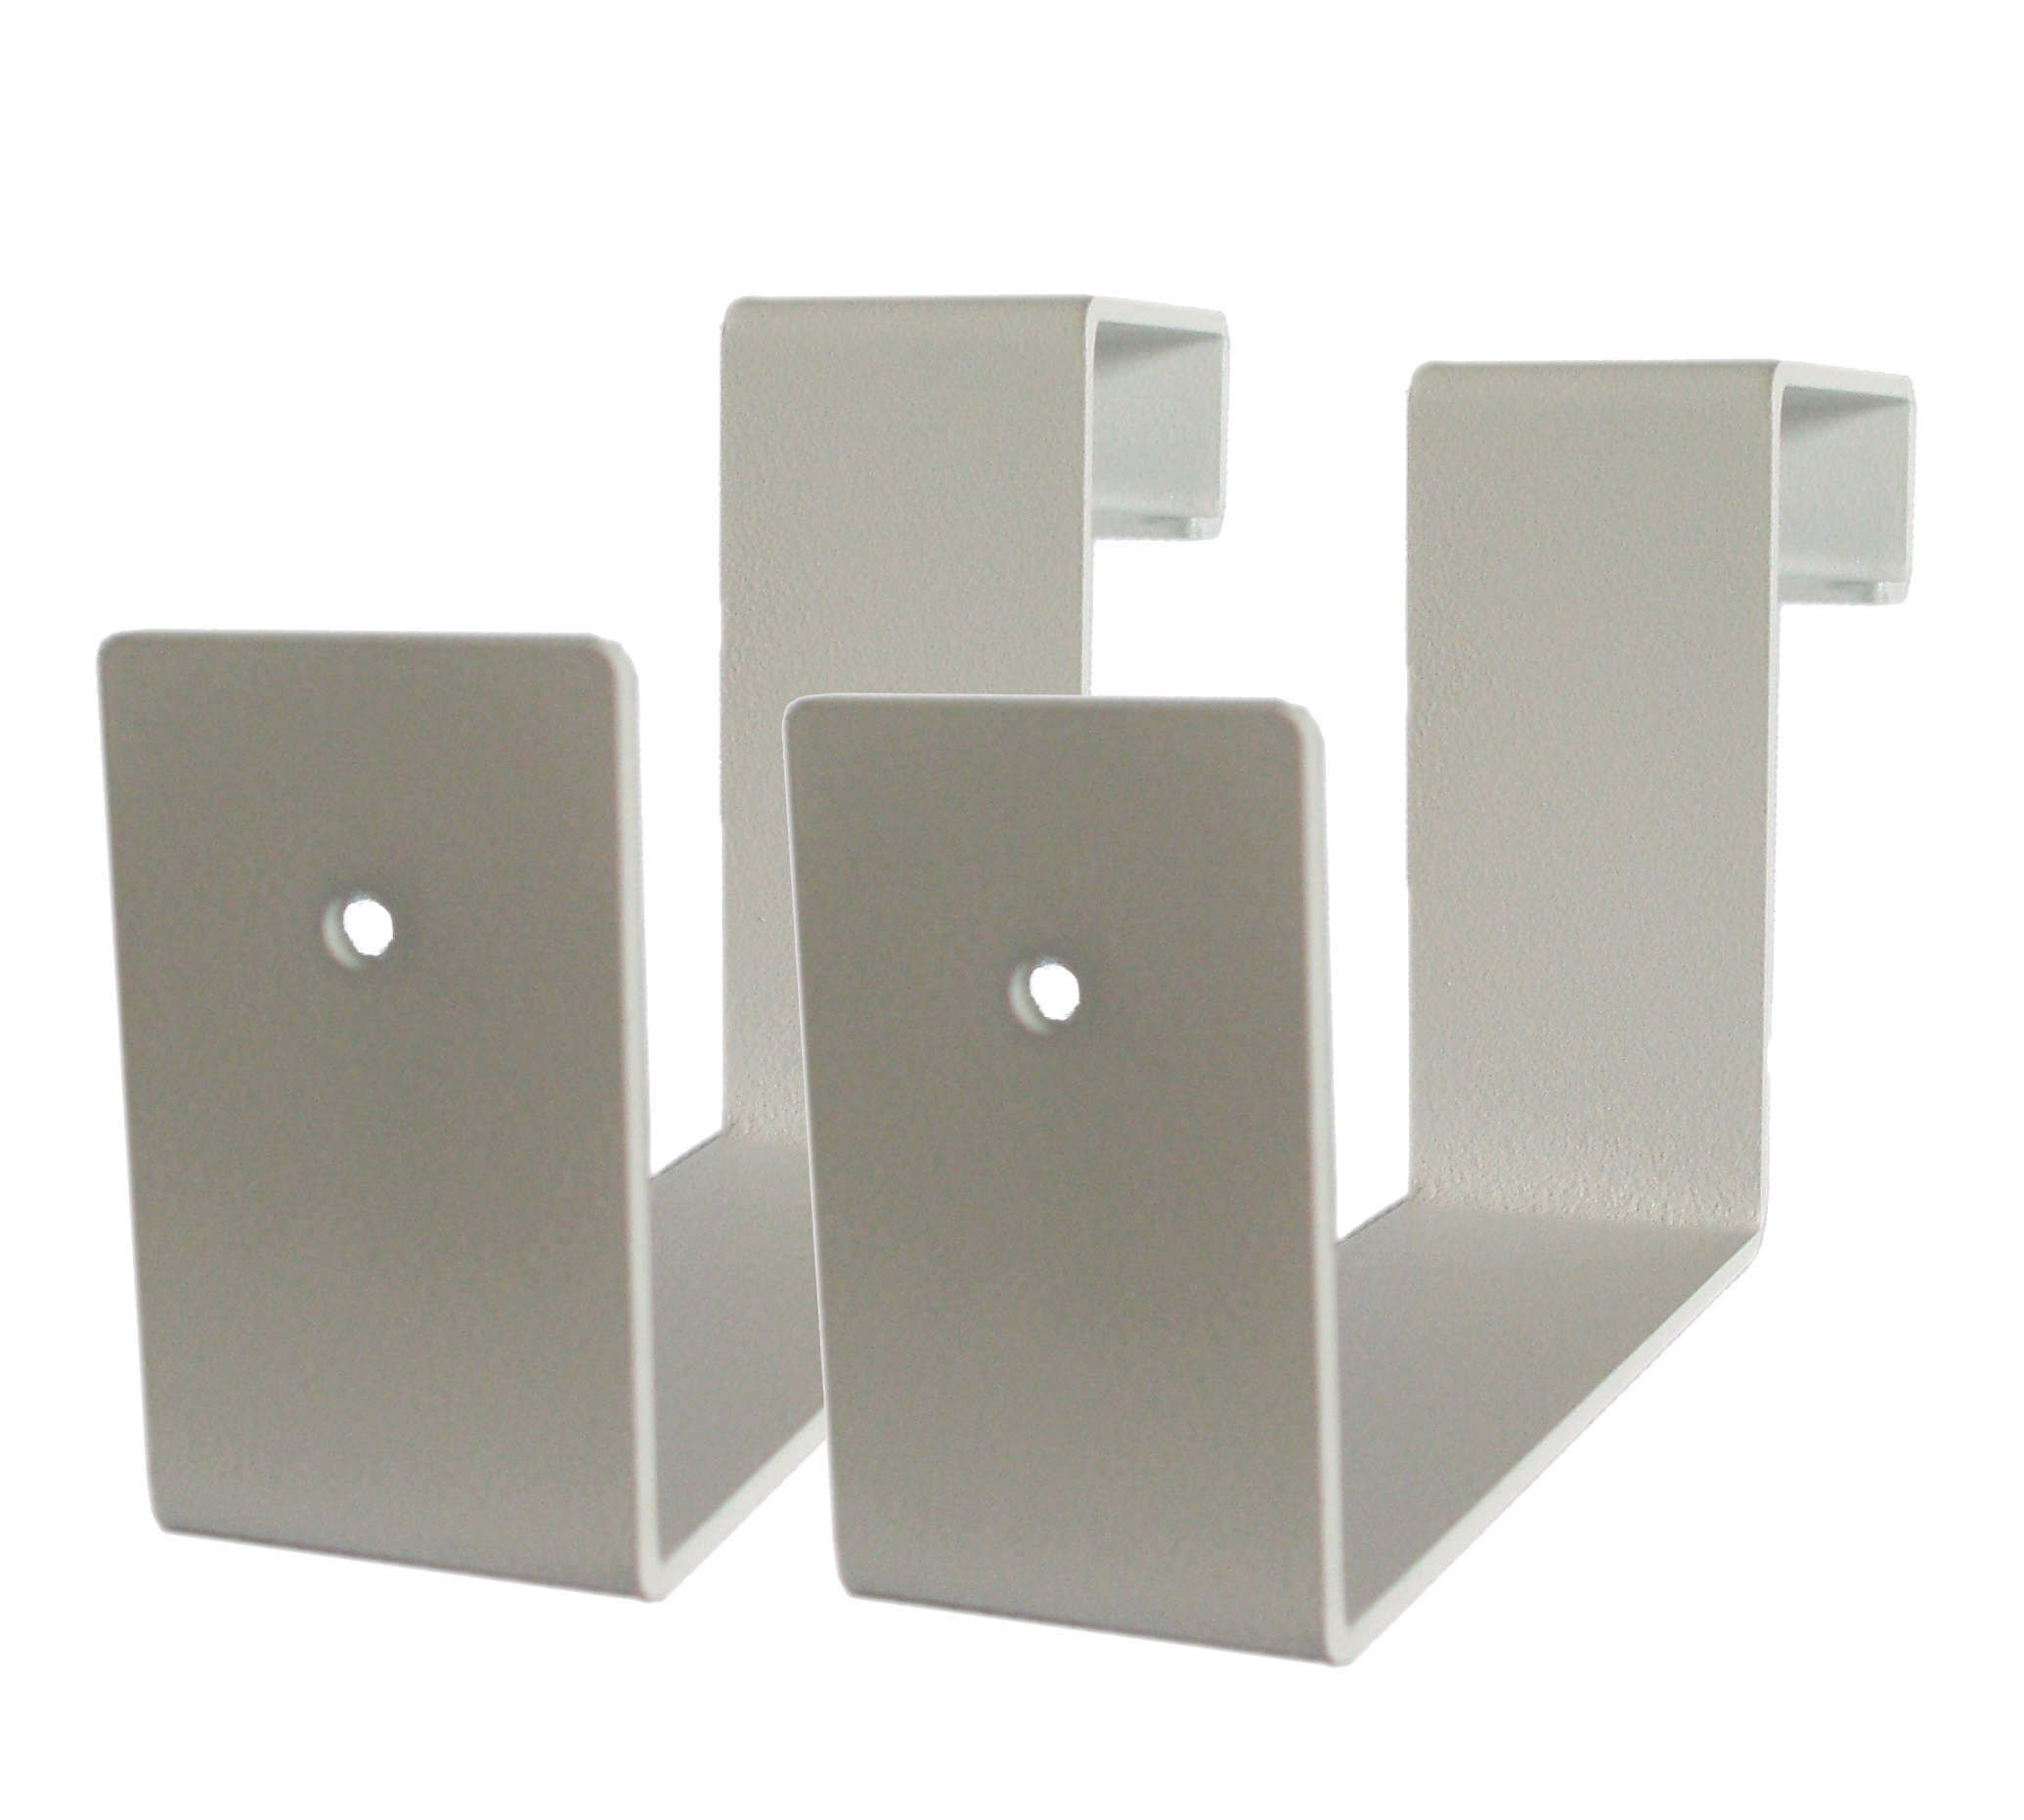 MIDE Products Flower Box Holders for T-Railings